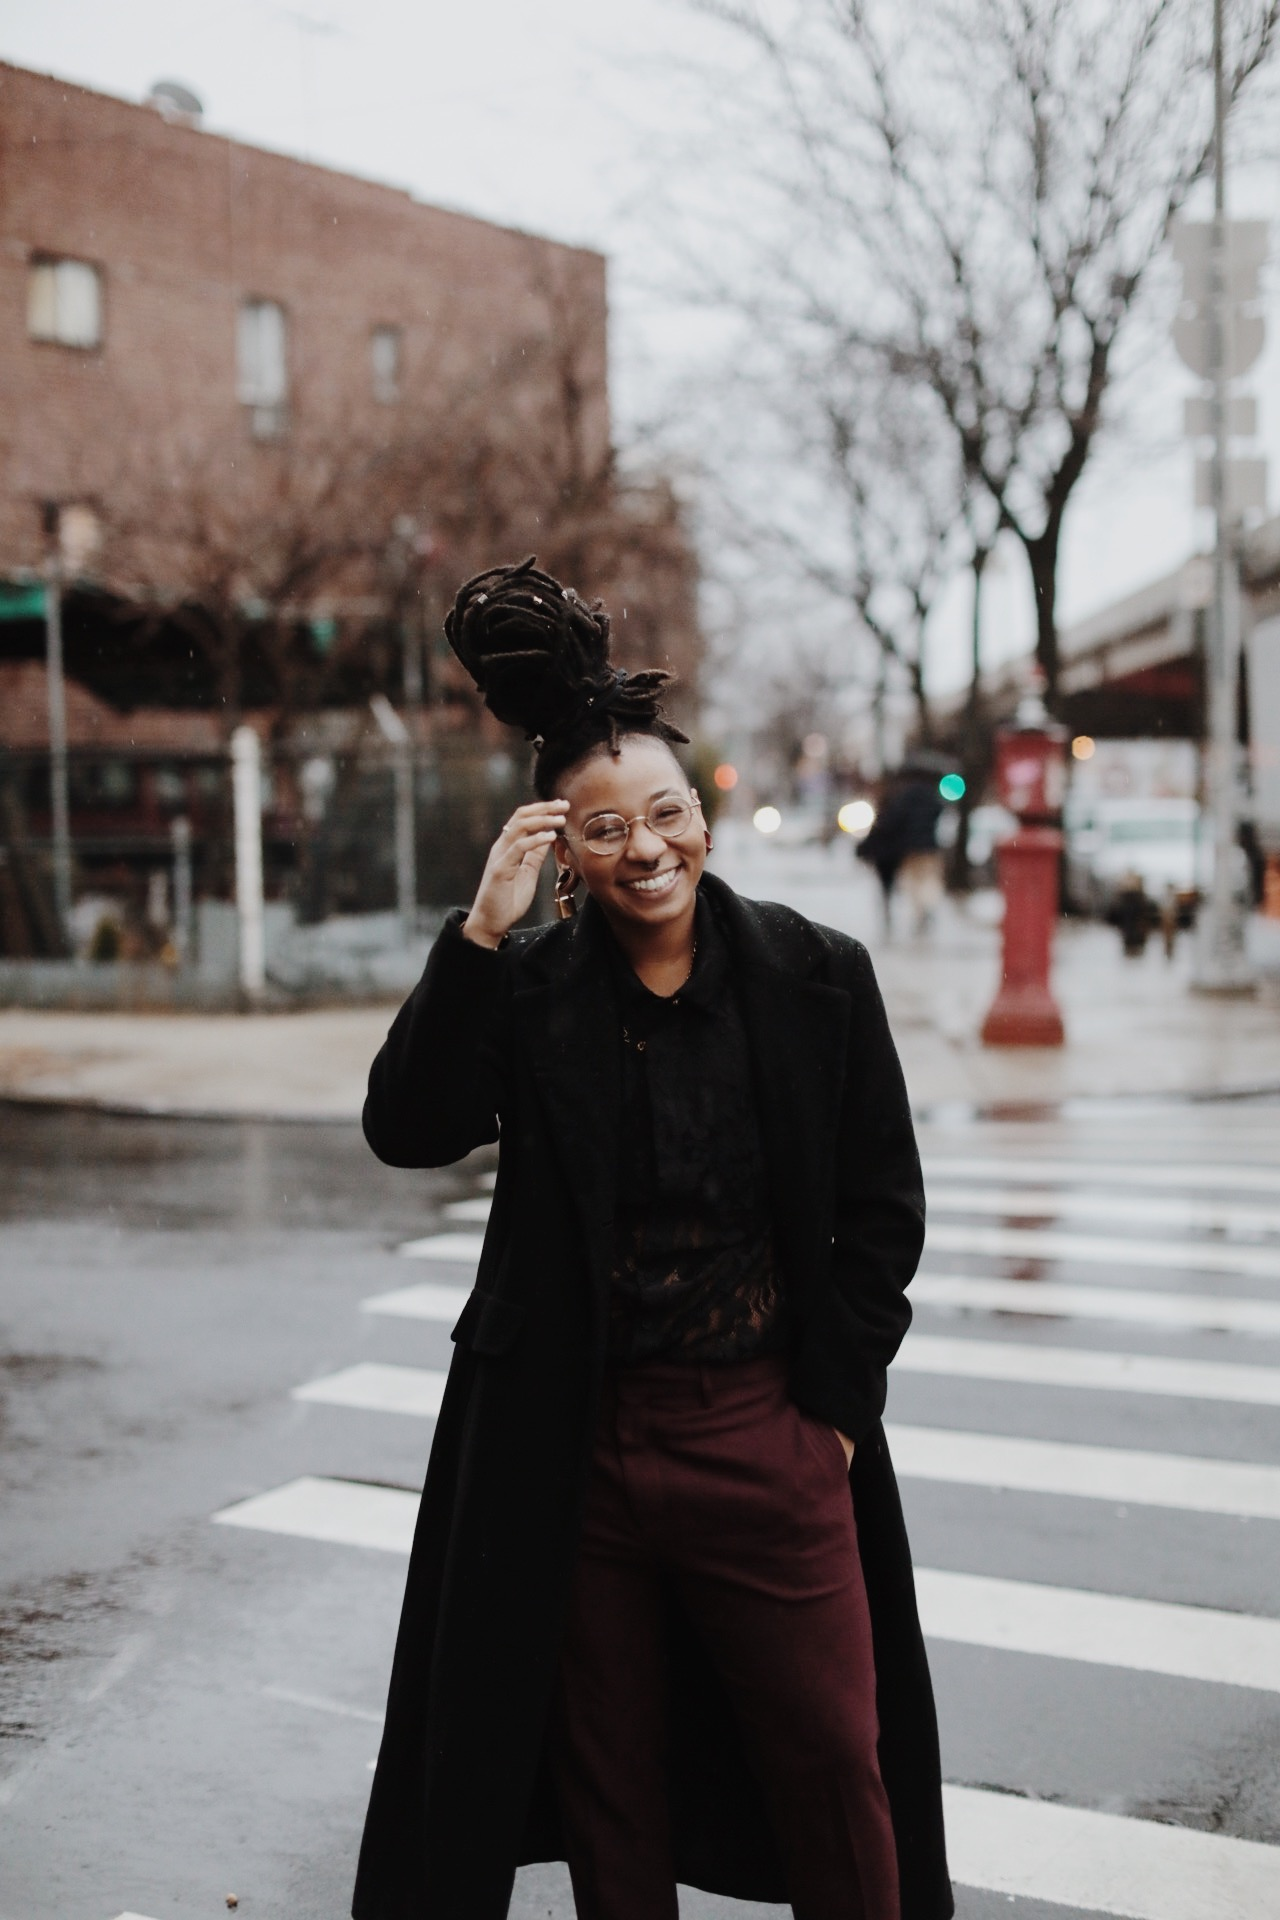 Happy New Year! - 2018 flew by in a blink of an eye and I have to say it was an amazing year. I learned so much about myself and I can only hope 2019 is just as exciting.Can you believe StylewithStray.com is almost 1 years old? My first blog post was February 8, 2018 — I'm lowkey screaming because WHHHAATTT!!!? lol